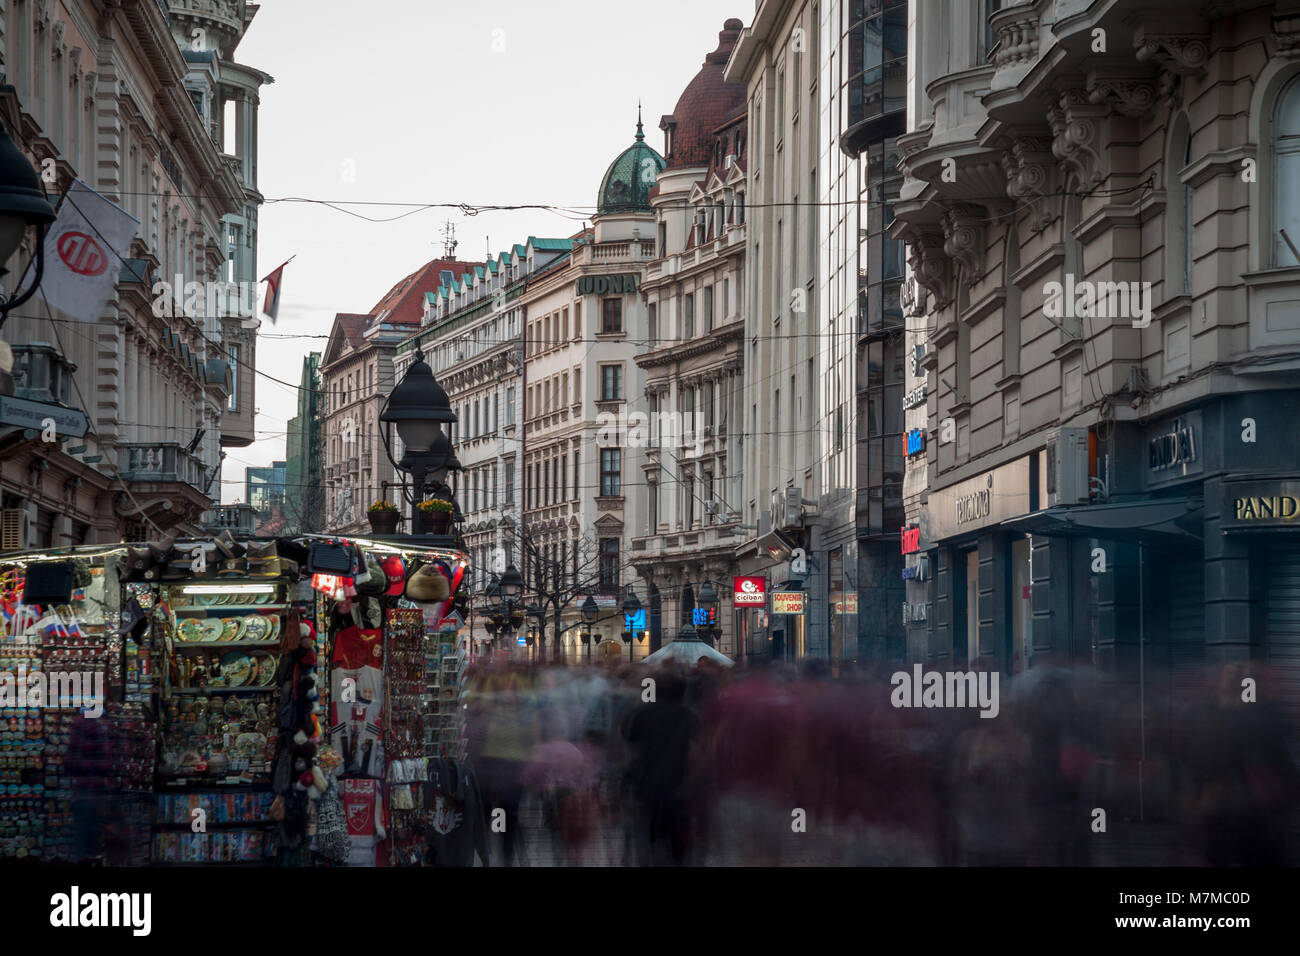 BELGRADE, SERBIA - MARCH 11, 2018: Kneza Mihailova street at dawn, crowded. Also known as Knez Mihaila, this is - Stock Image